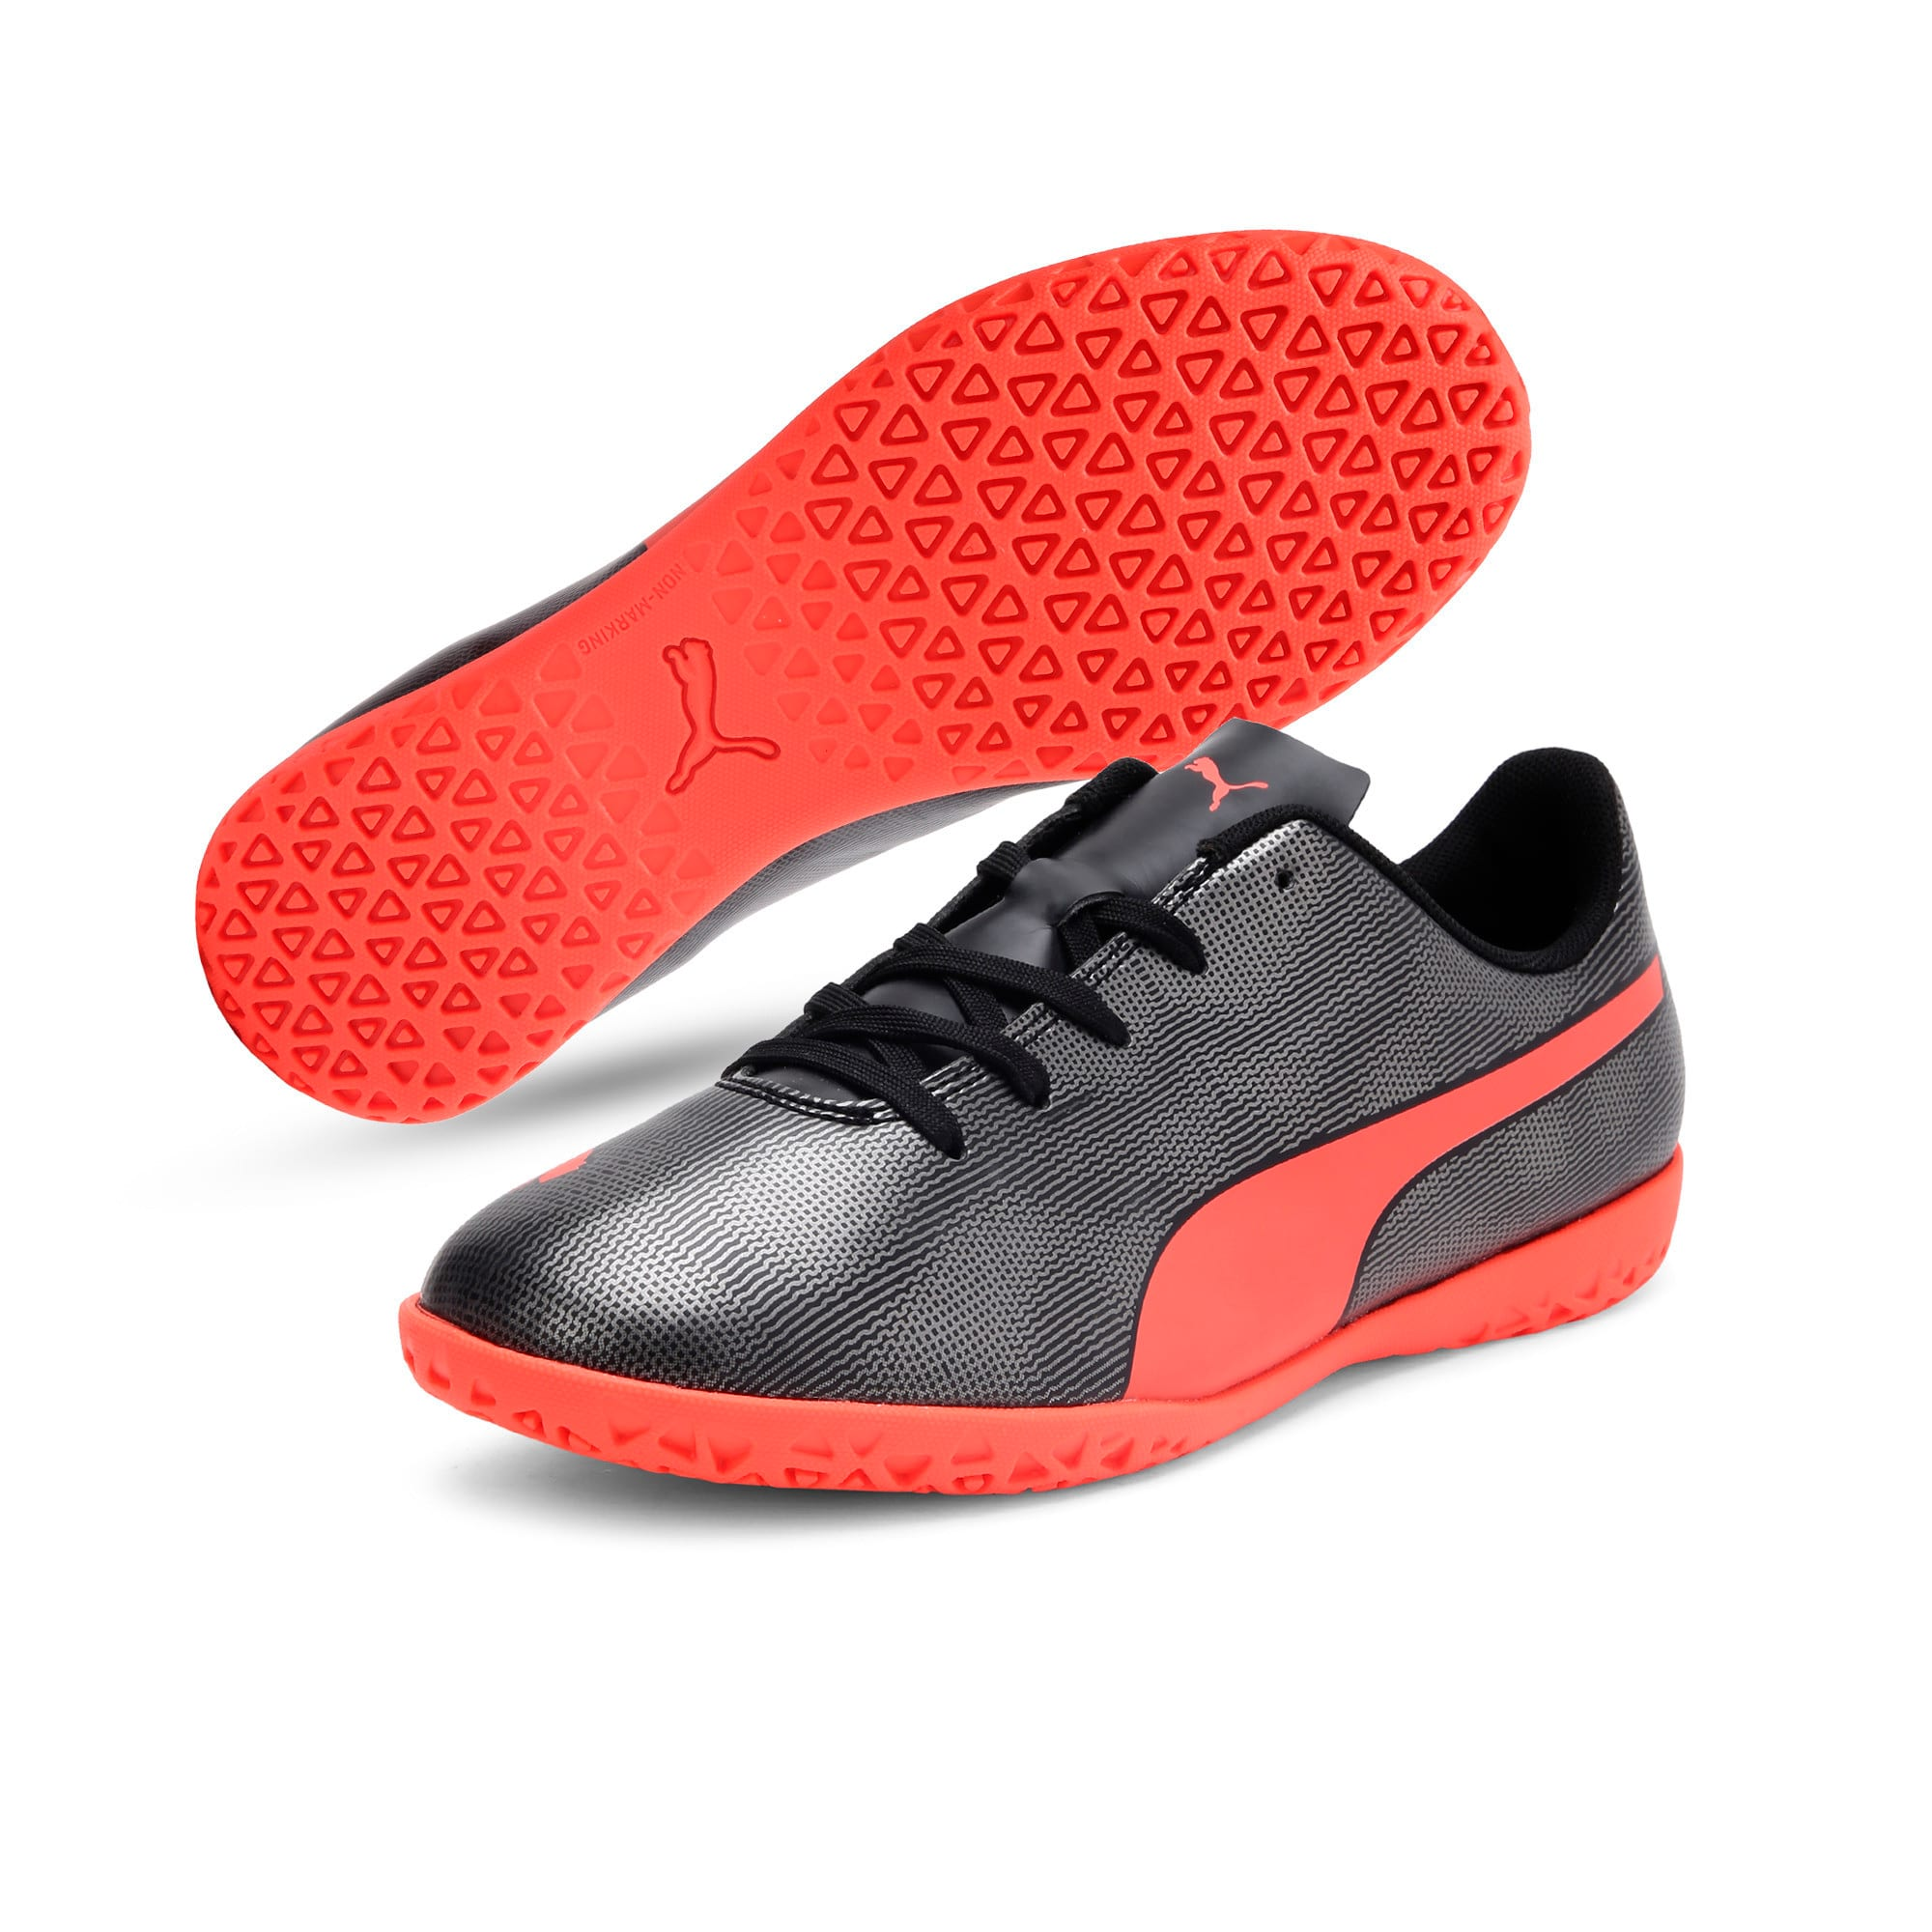 Thumbnail 2 of Rapido IT Youth Football Boots, Black-Nrgy Red-Aged Silver, medium-IND